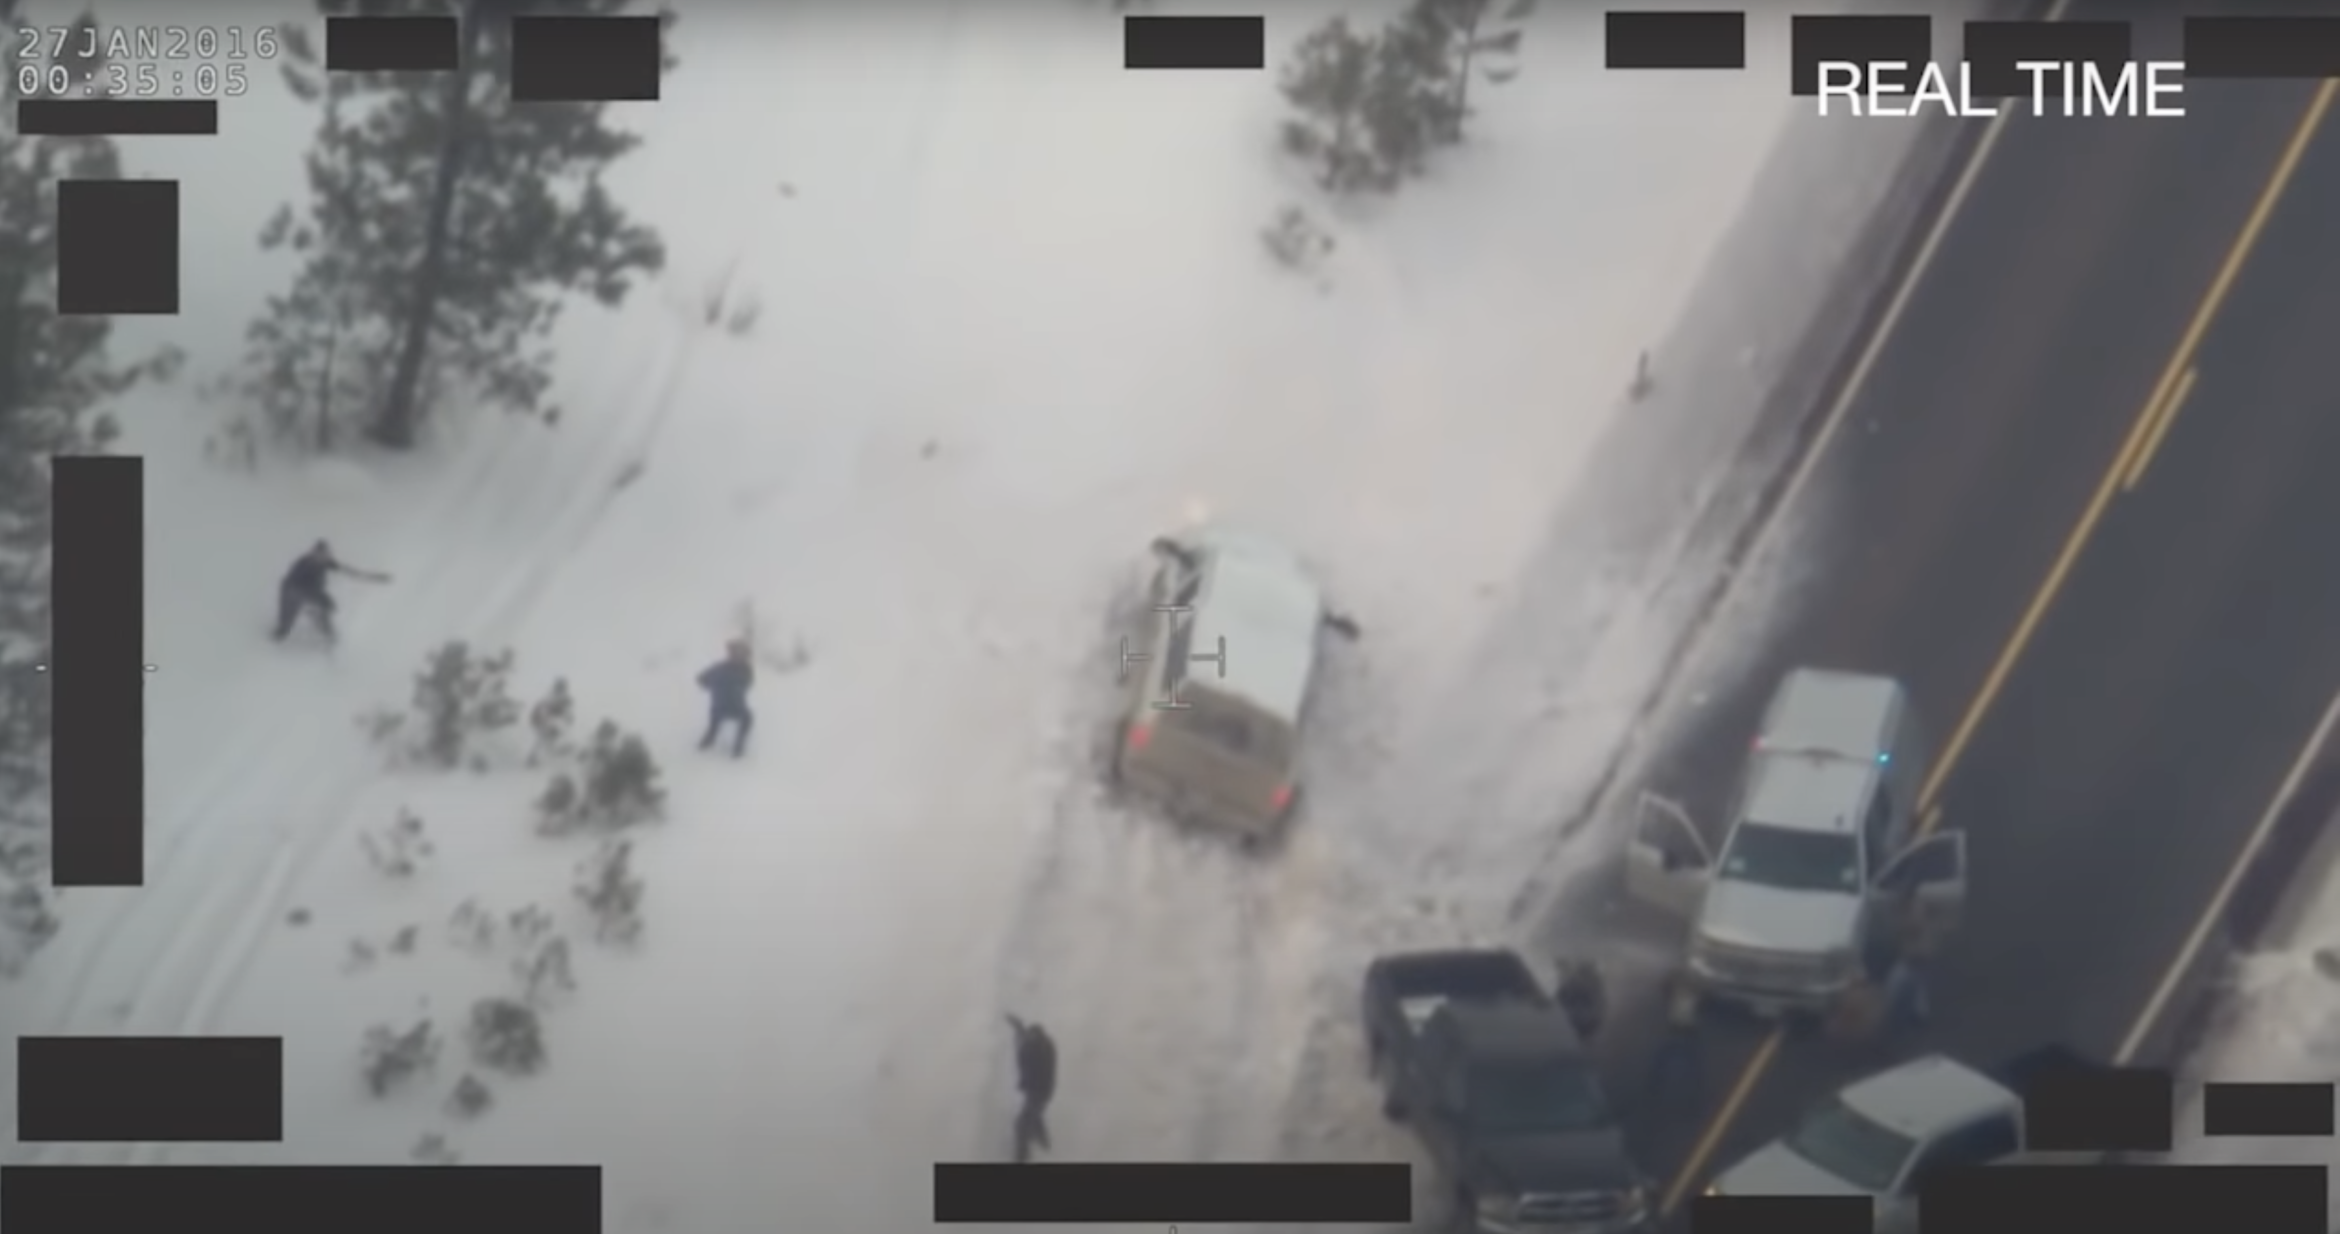 Overhead view from an FBI surveillance helicopter of several figures standing in the snow. One man is flanked by two law enforcement officers who are pointing weapons at him.